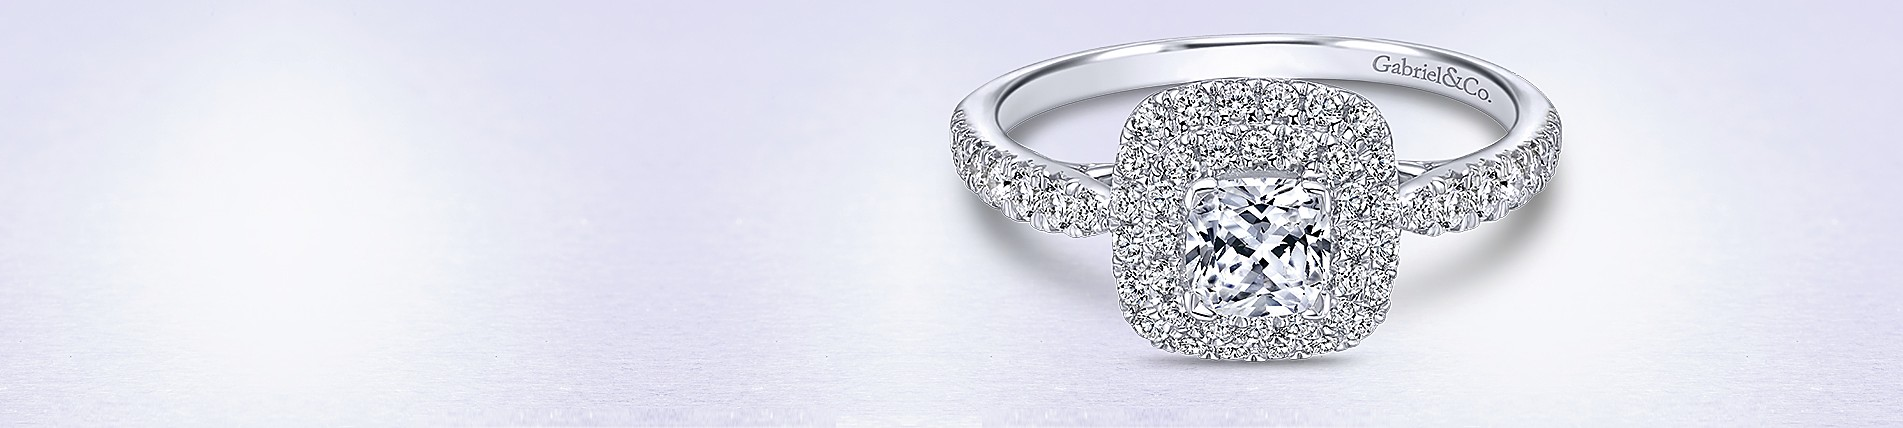 vert rings diamonds cushion kwiat stewart side on engagement martha solitaire diamond cut baguette weddings ring